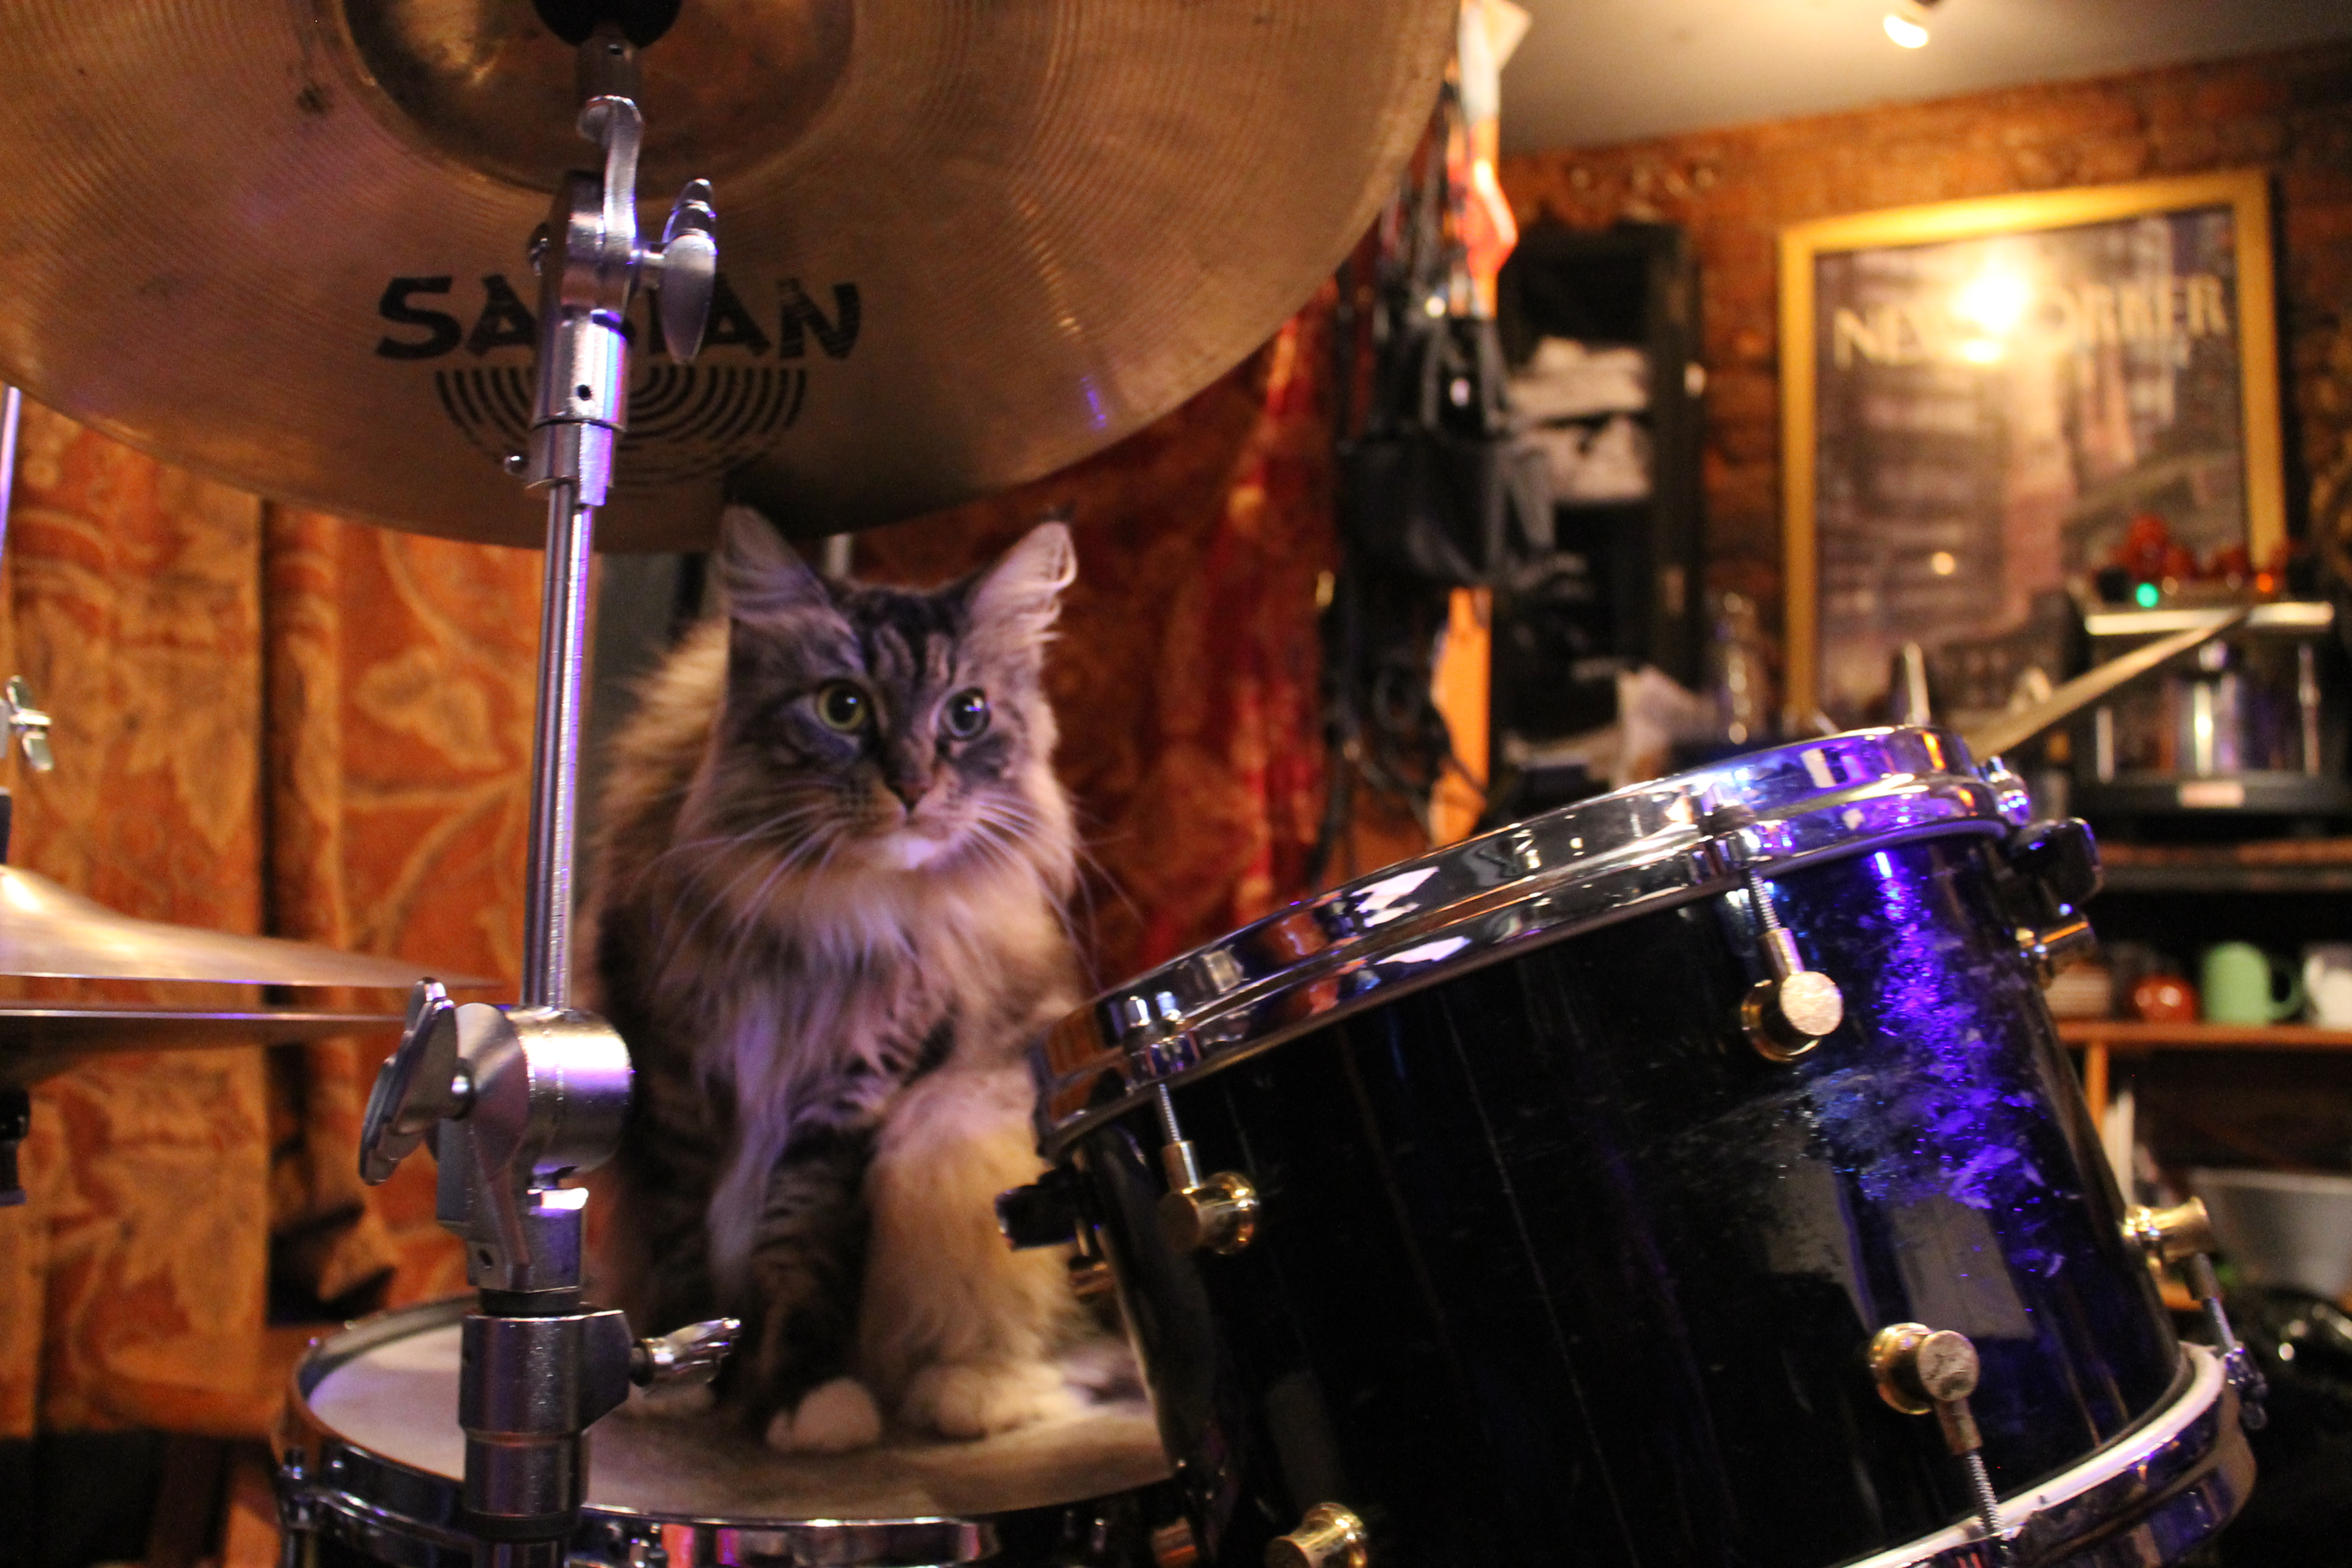 . . . but this cat wants to play!